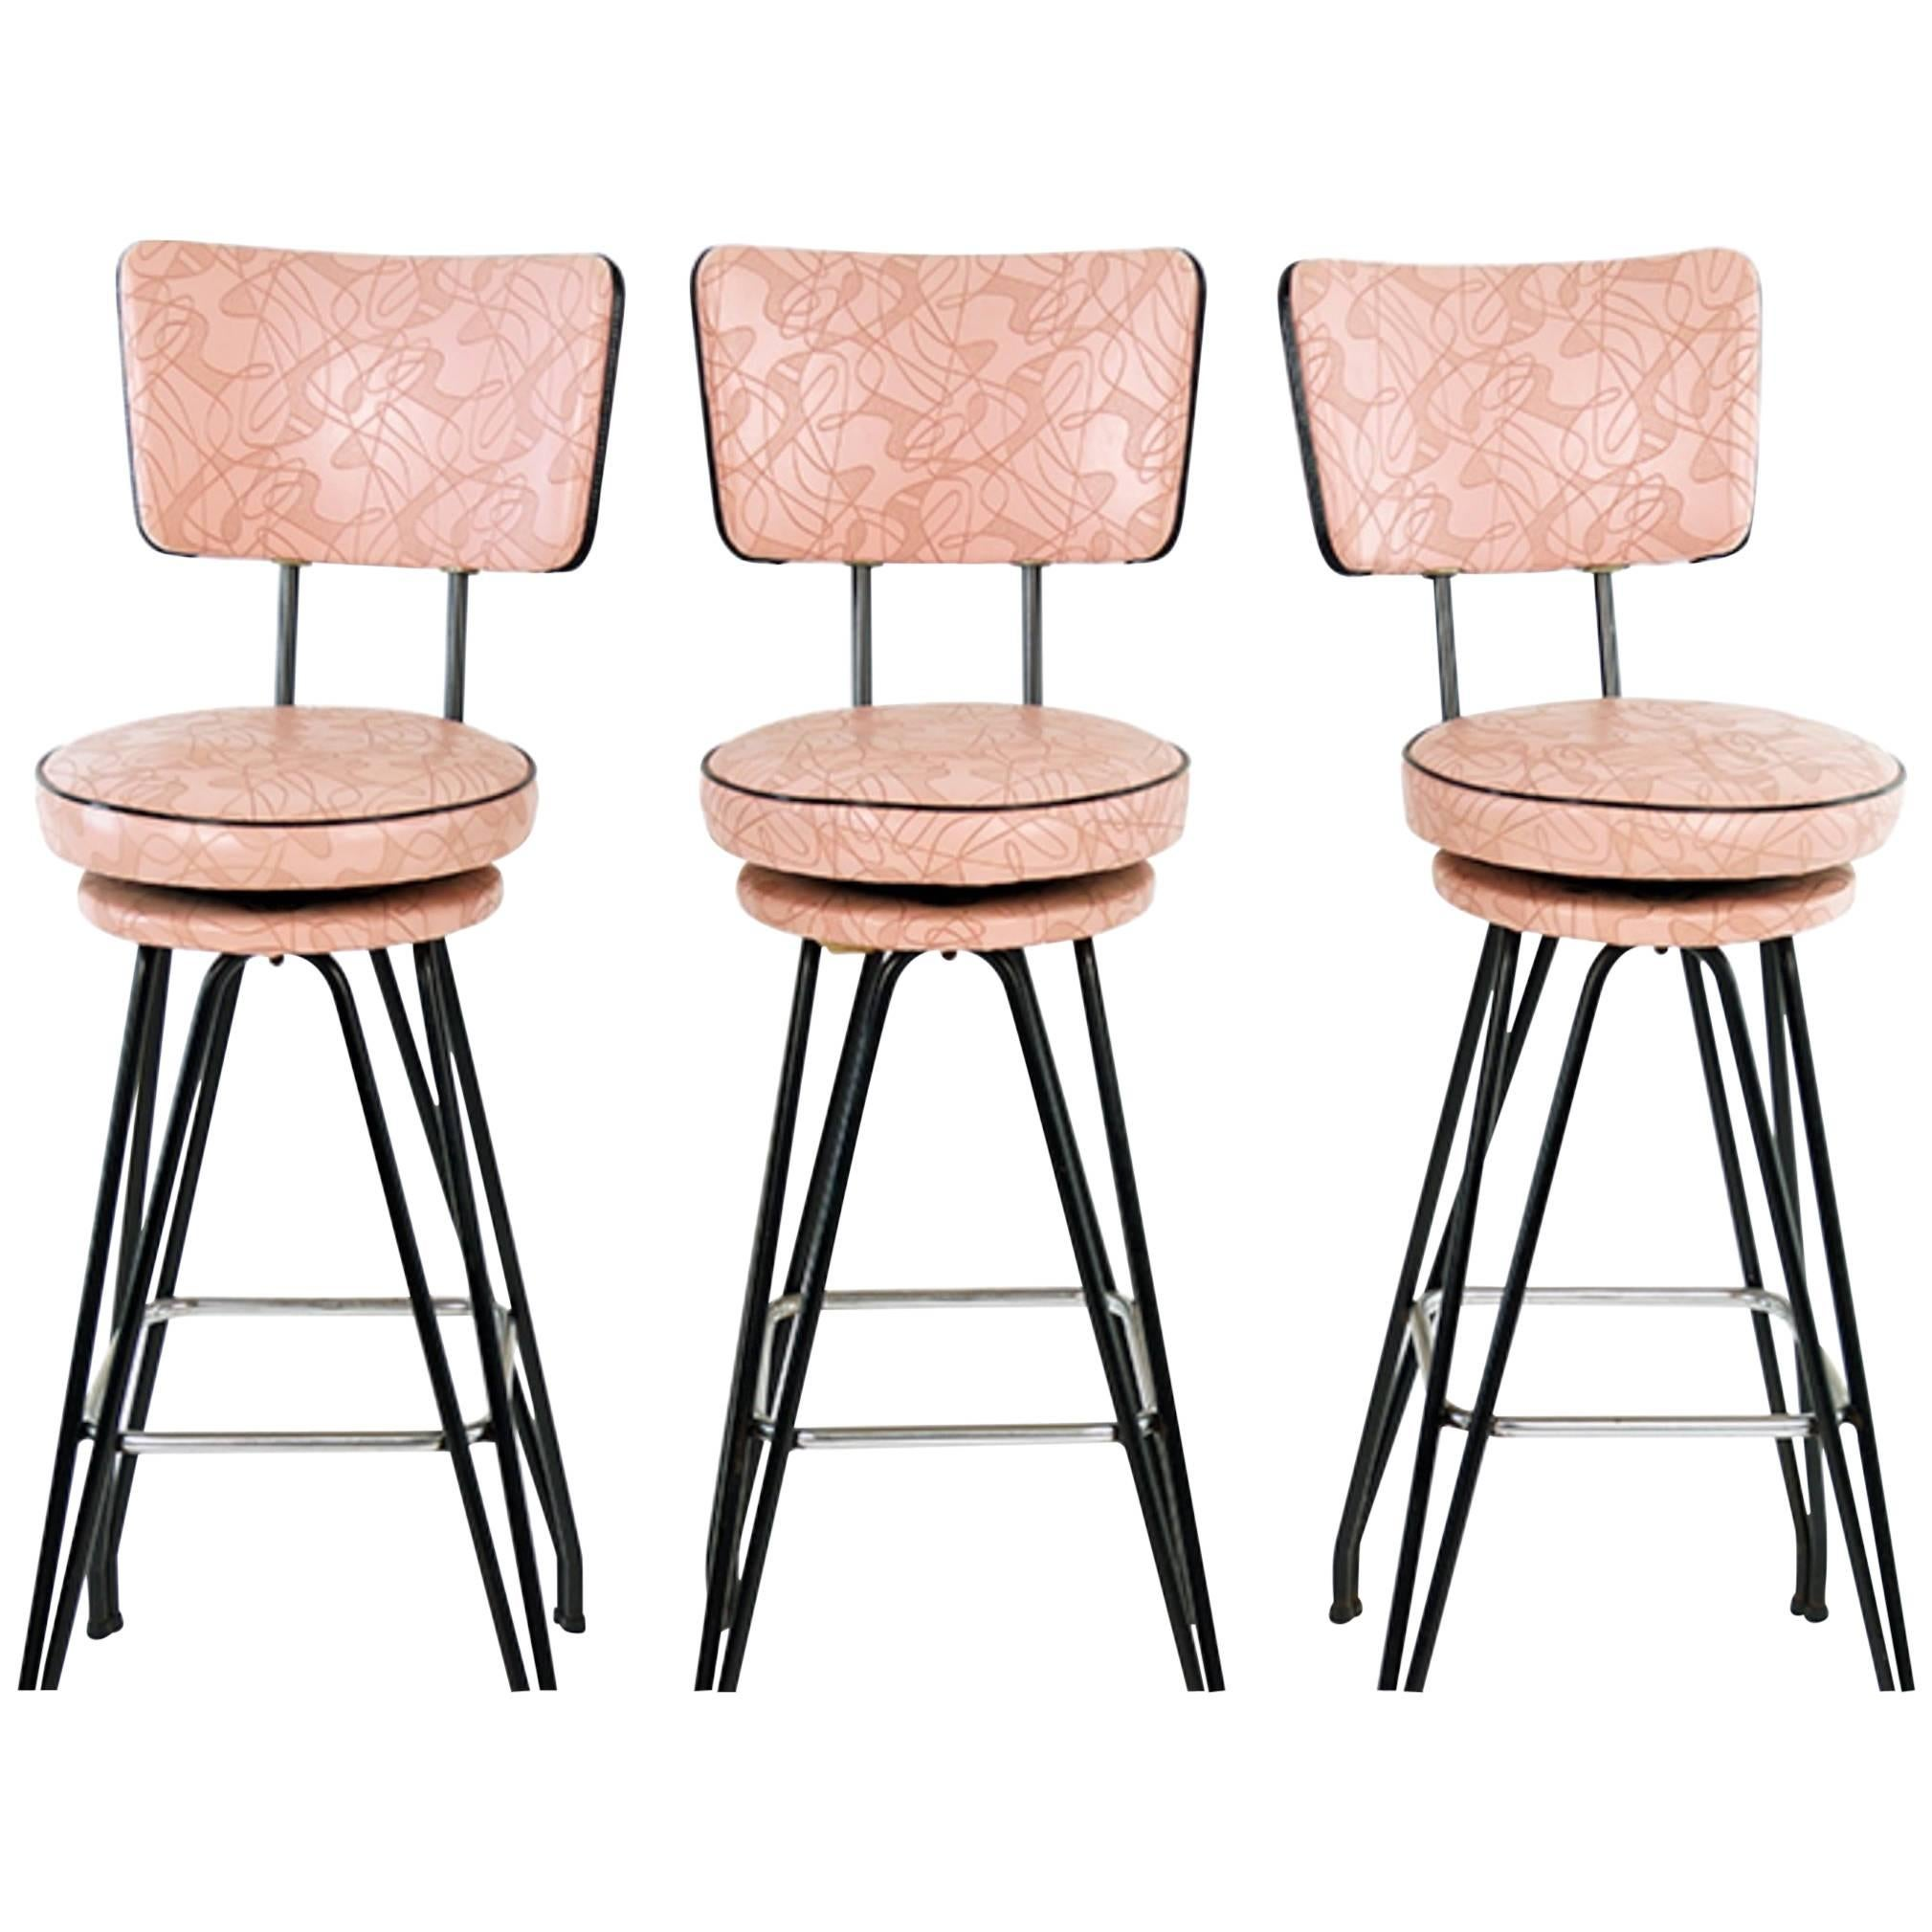 Set of Three Kitch Mid-Century Bar Stools with Pink Upholstery, Black Piping